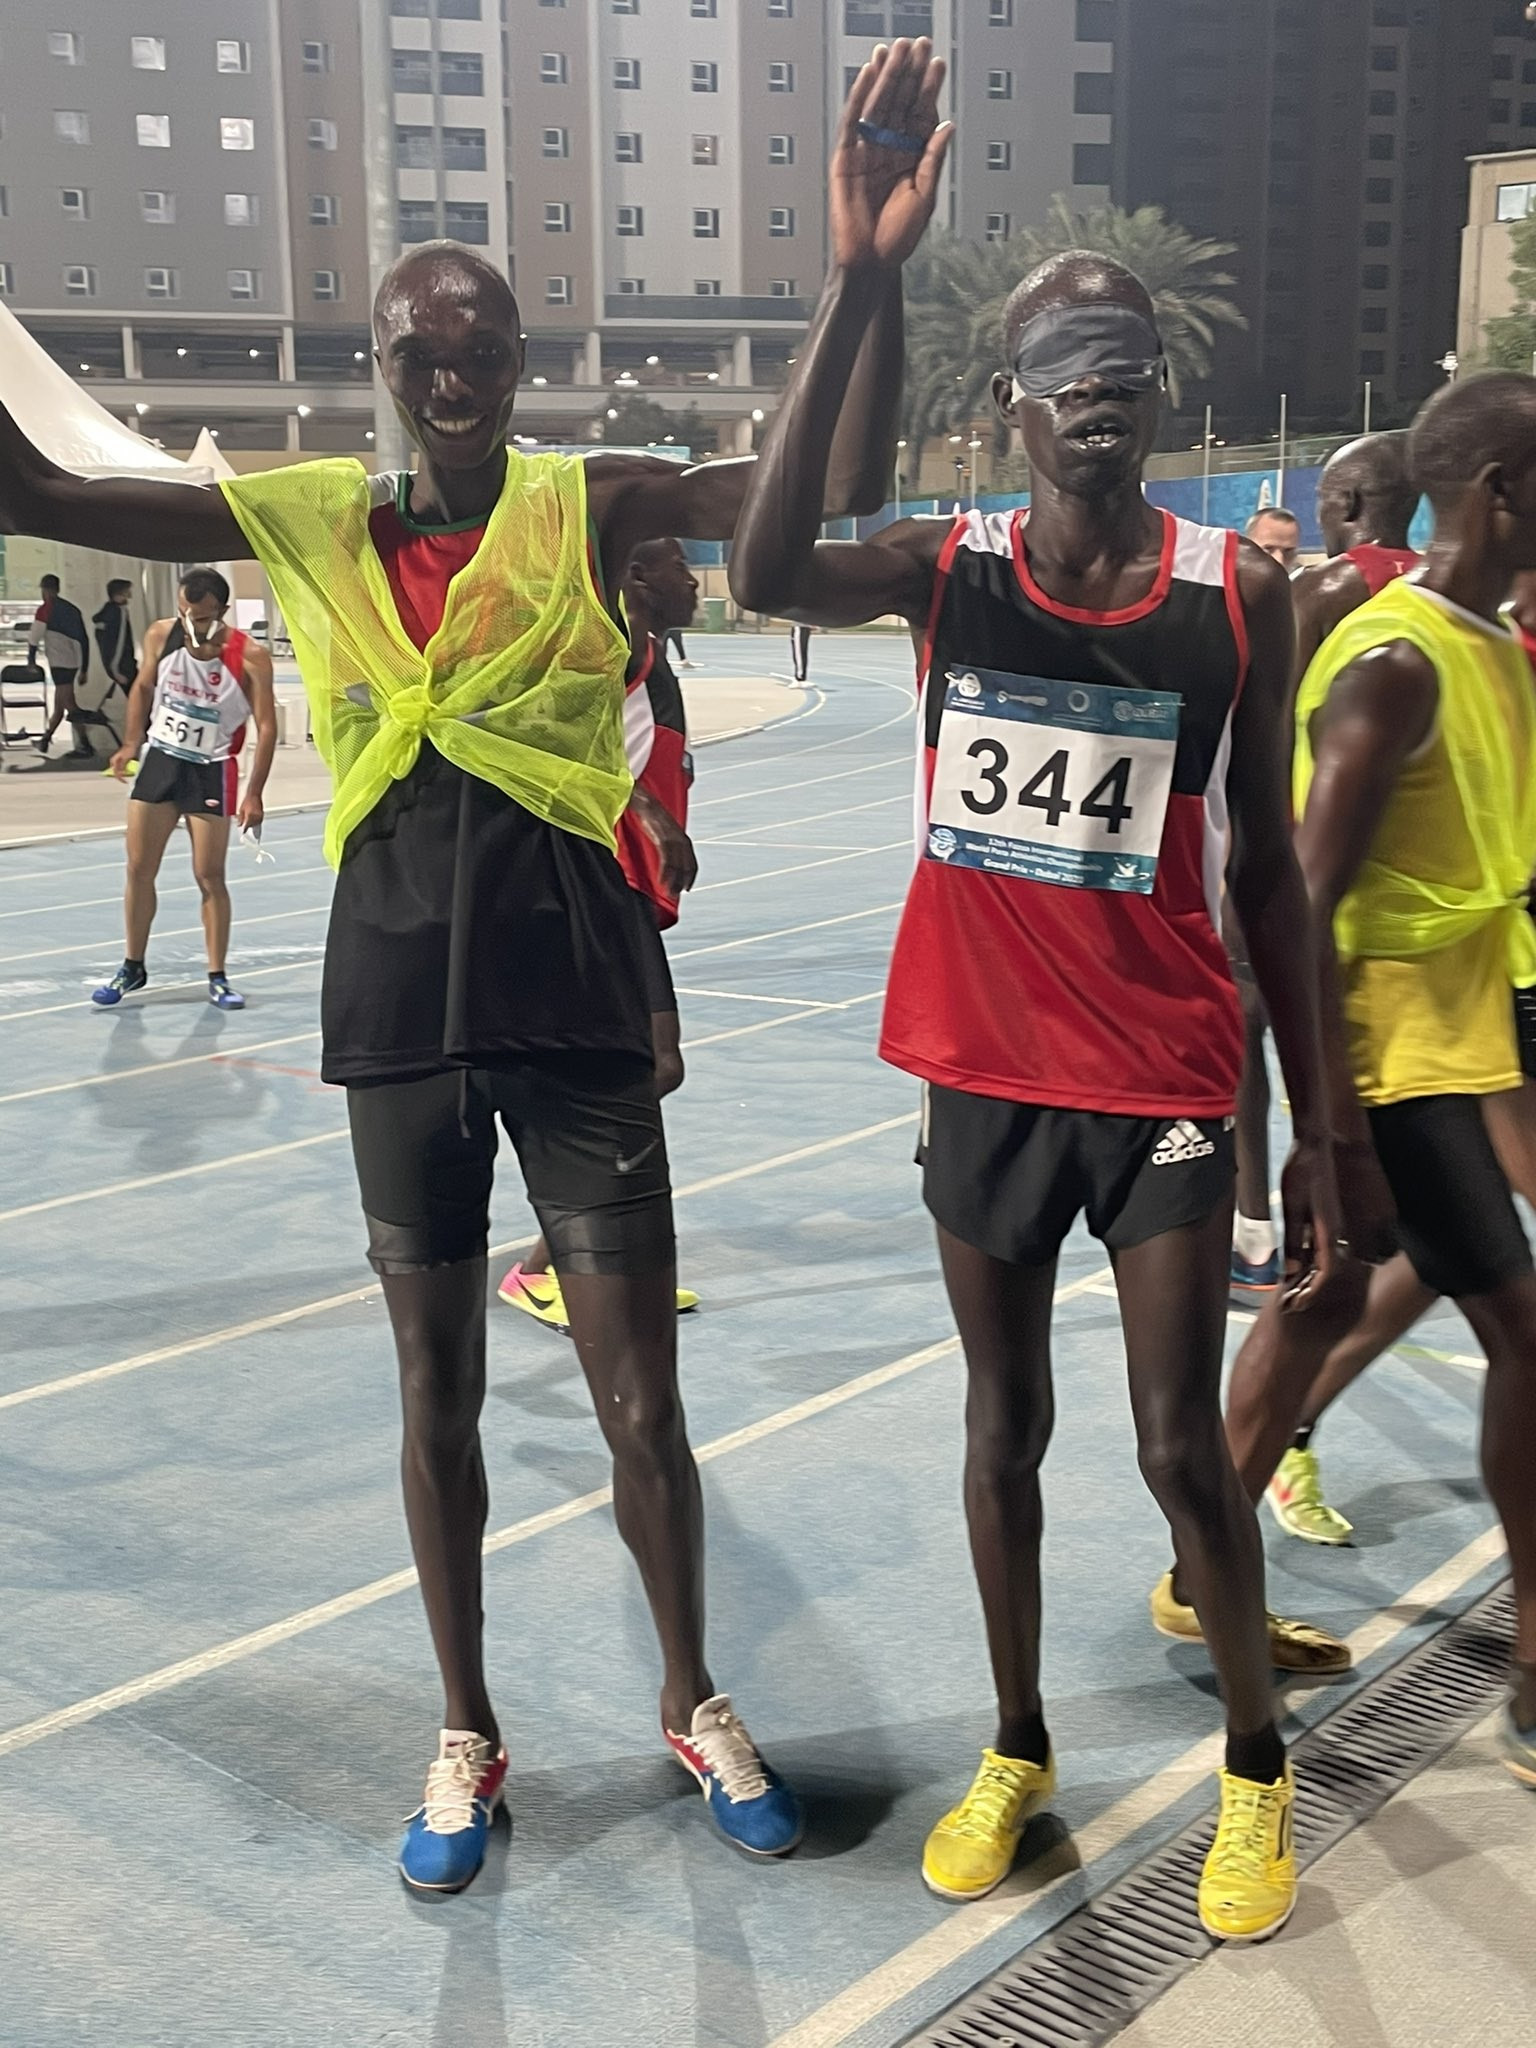 Kenya dominate 1500m and 5,000m races at World Para Athletics Grand Prix